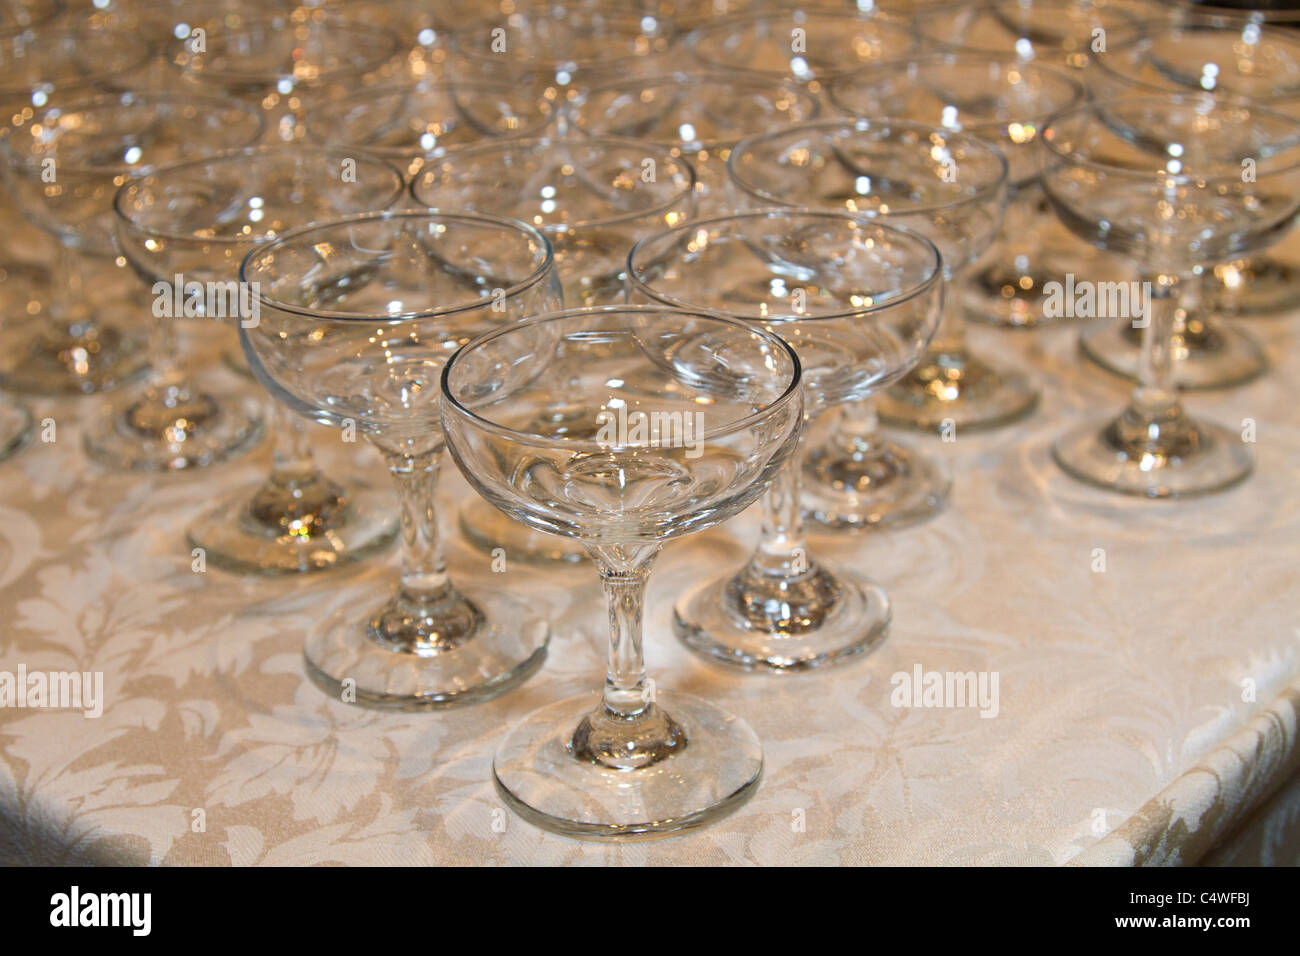 table cloth white empty stockfotos table cloth white empty bilder alamy. Black Bedroom Furniture Sets. Home Design Ideas